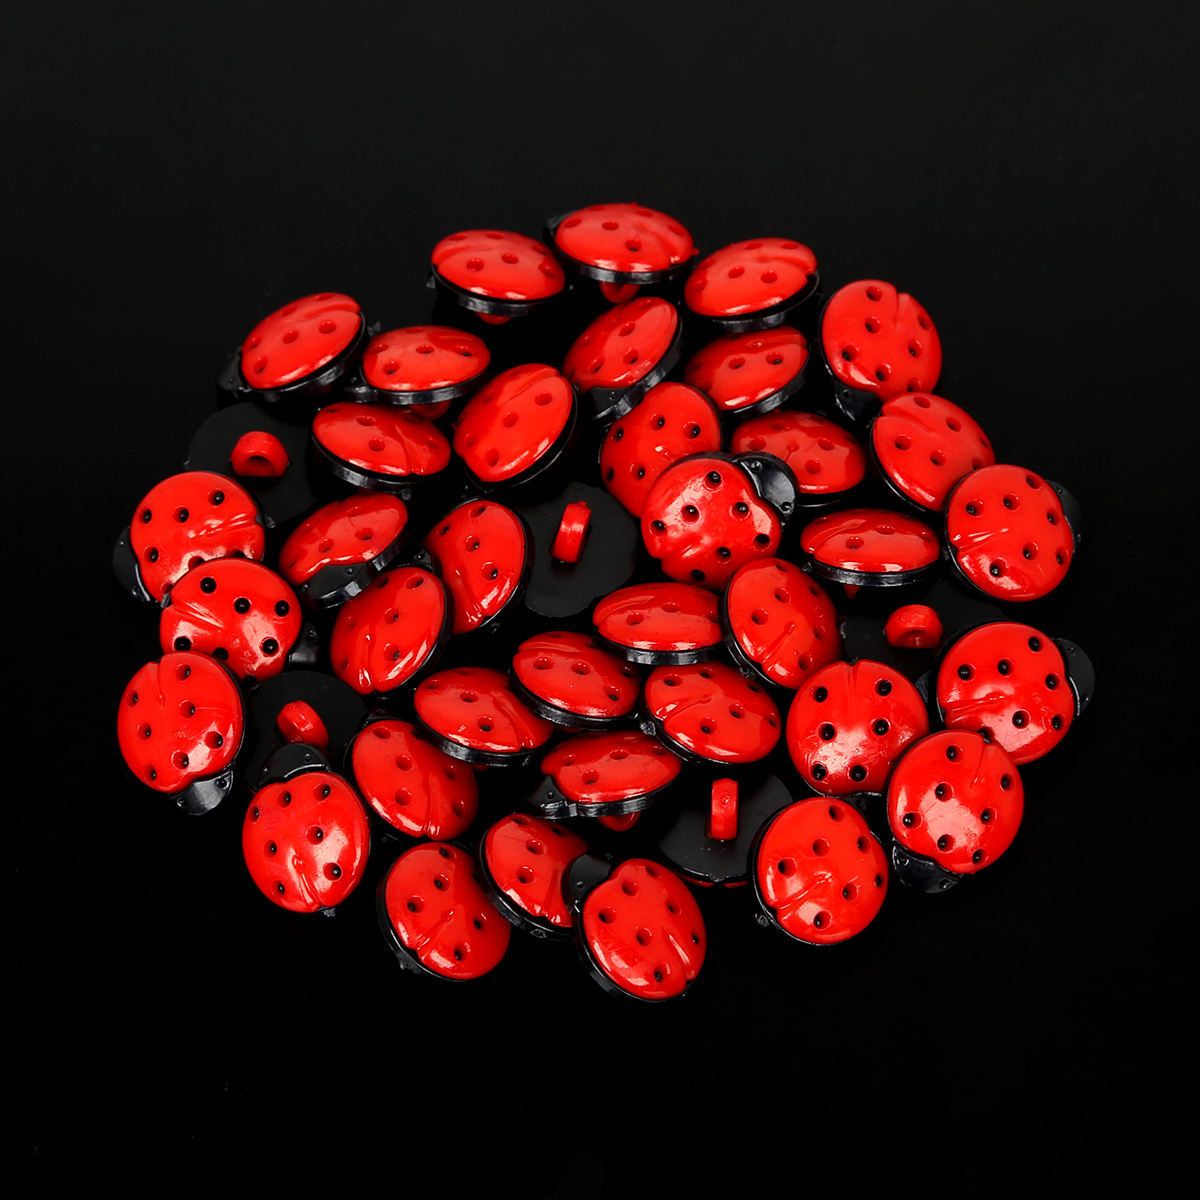 Wholesale 50Pcs 13x15mm Mix Color/Red Ladybug Plastic Sewing Buttons DIY Kid's Appliques/Craft/Sewing Accessories